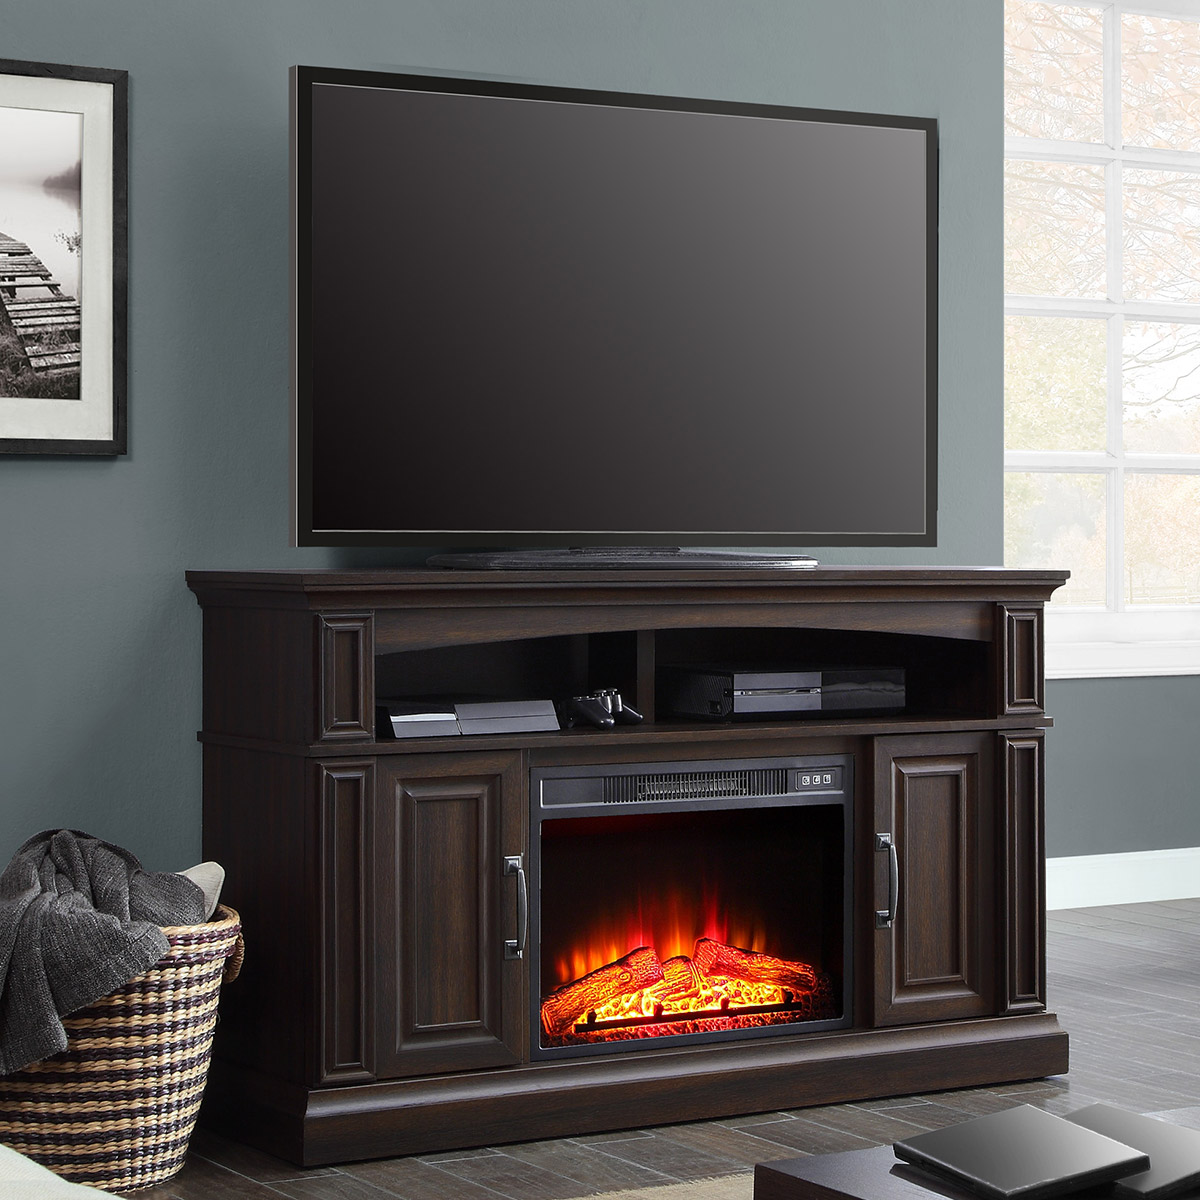 "Whalen 55in Media Fireplace for TVs up to 60"", Warm Ash Brown"